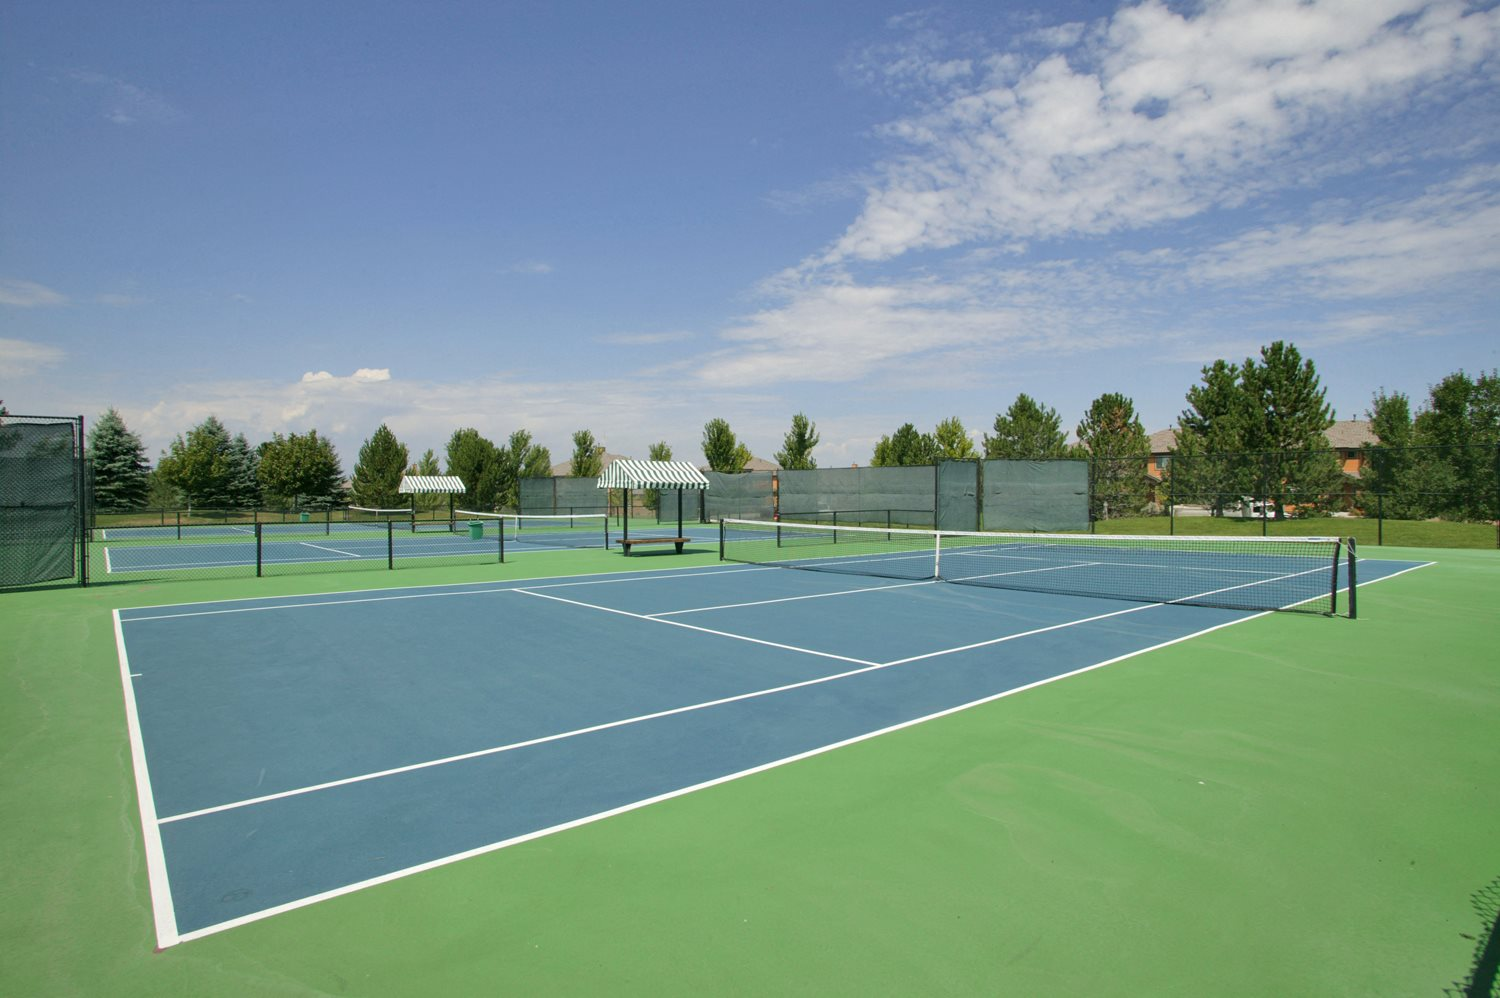 Three full-size tennis courts